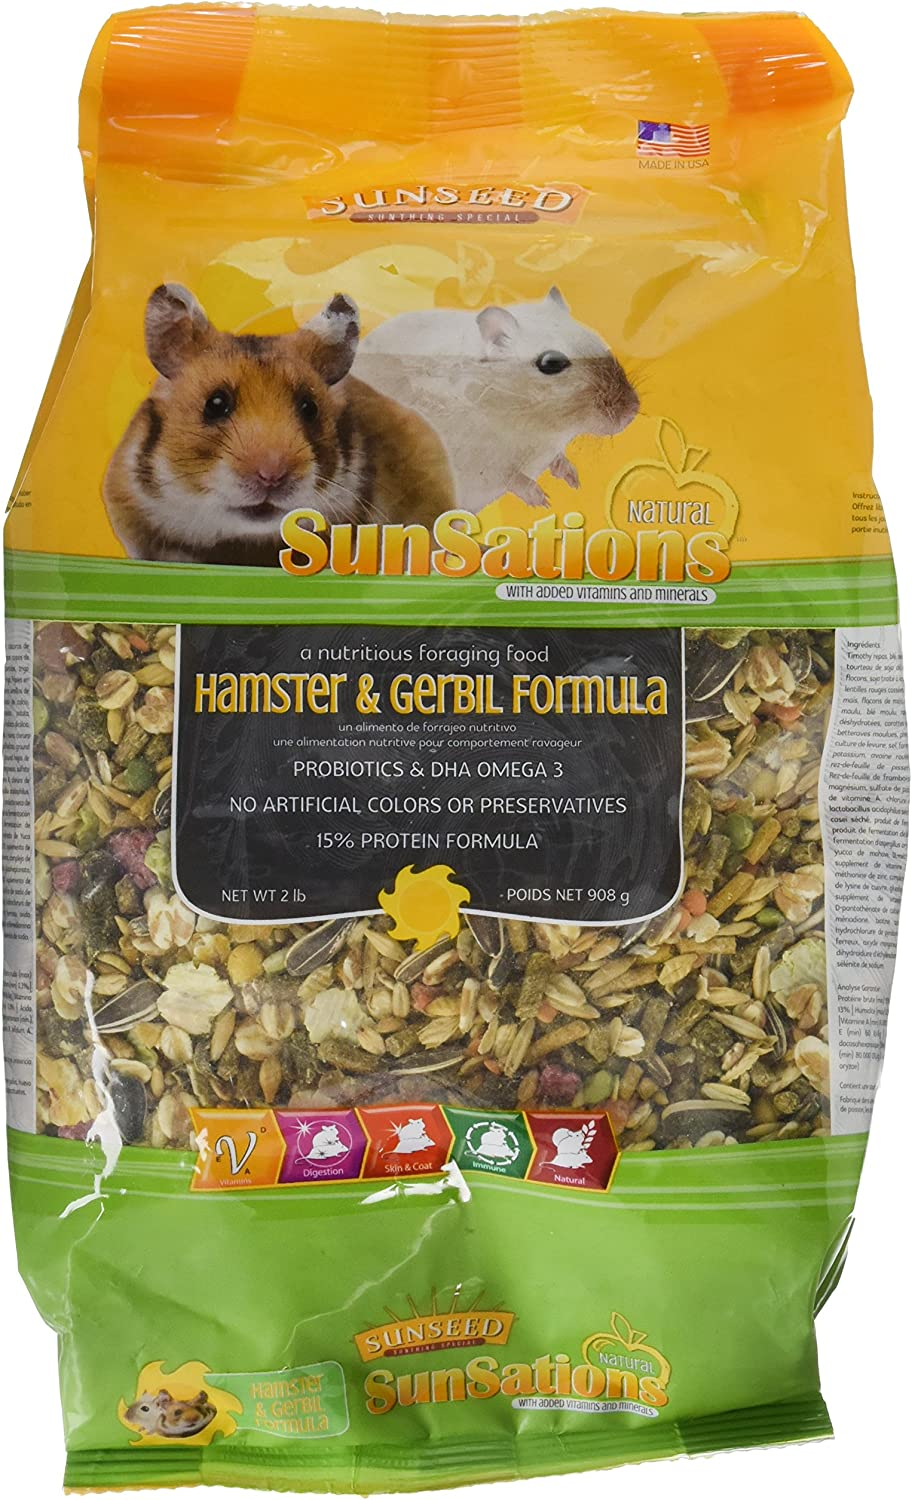 Sunseed Company 36058 1 Piece Sunsations Natural Hamster/Gerbil Formula Food Treat, 2 Lb